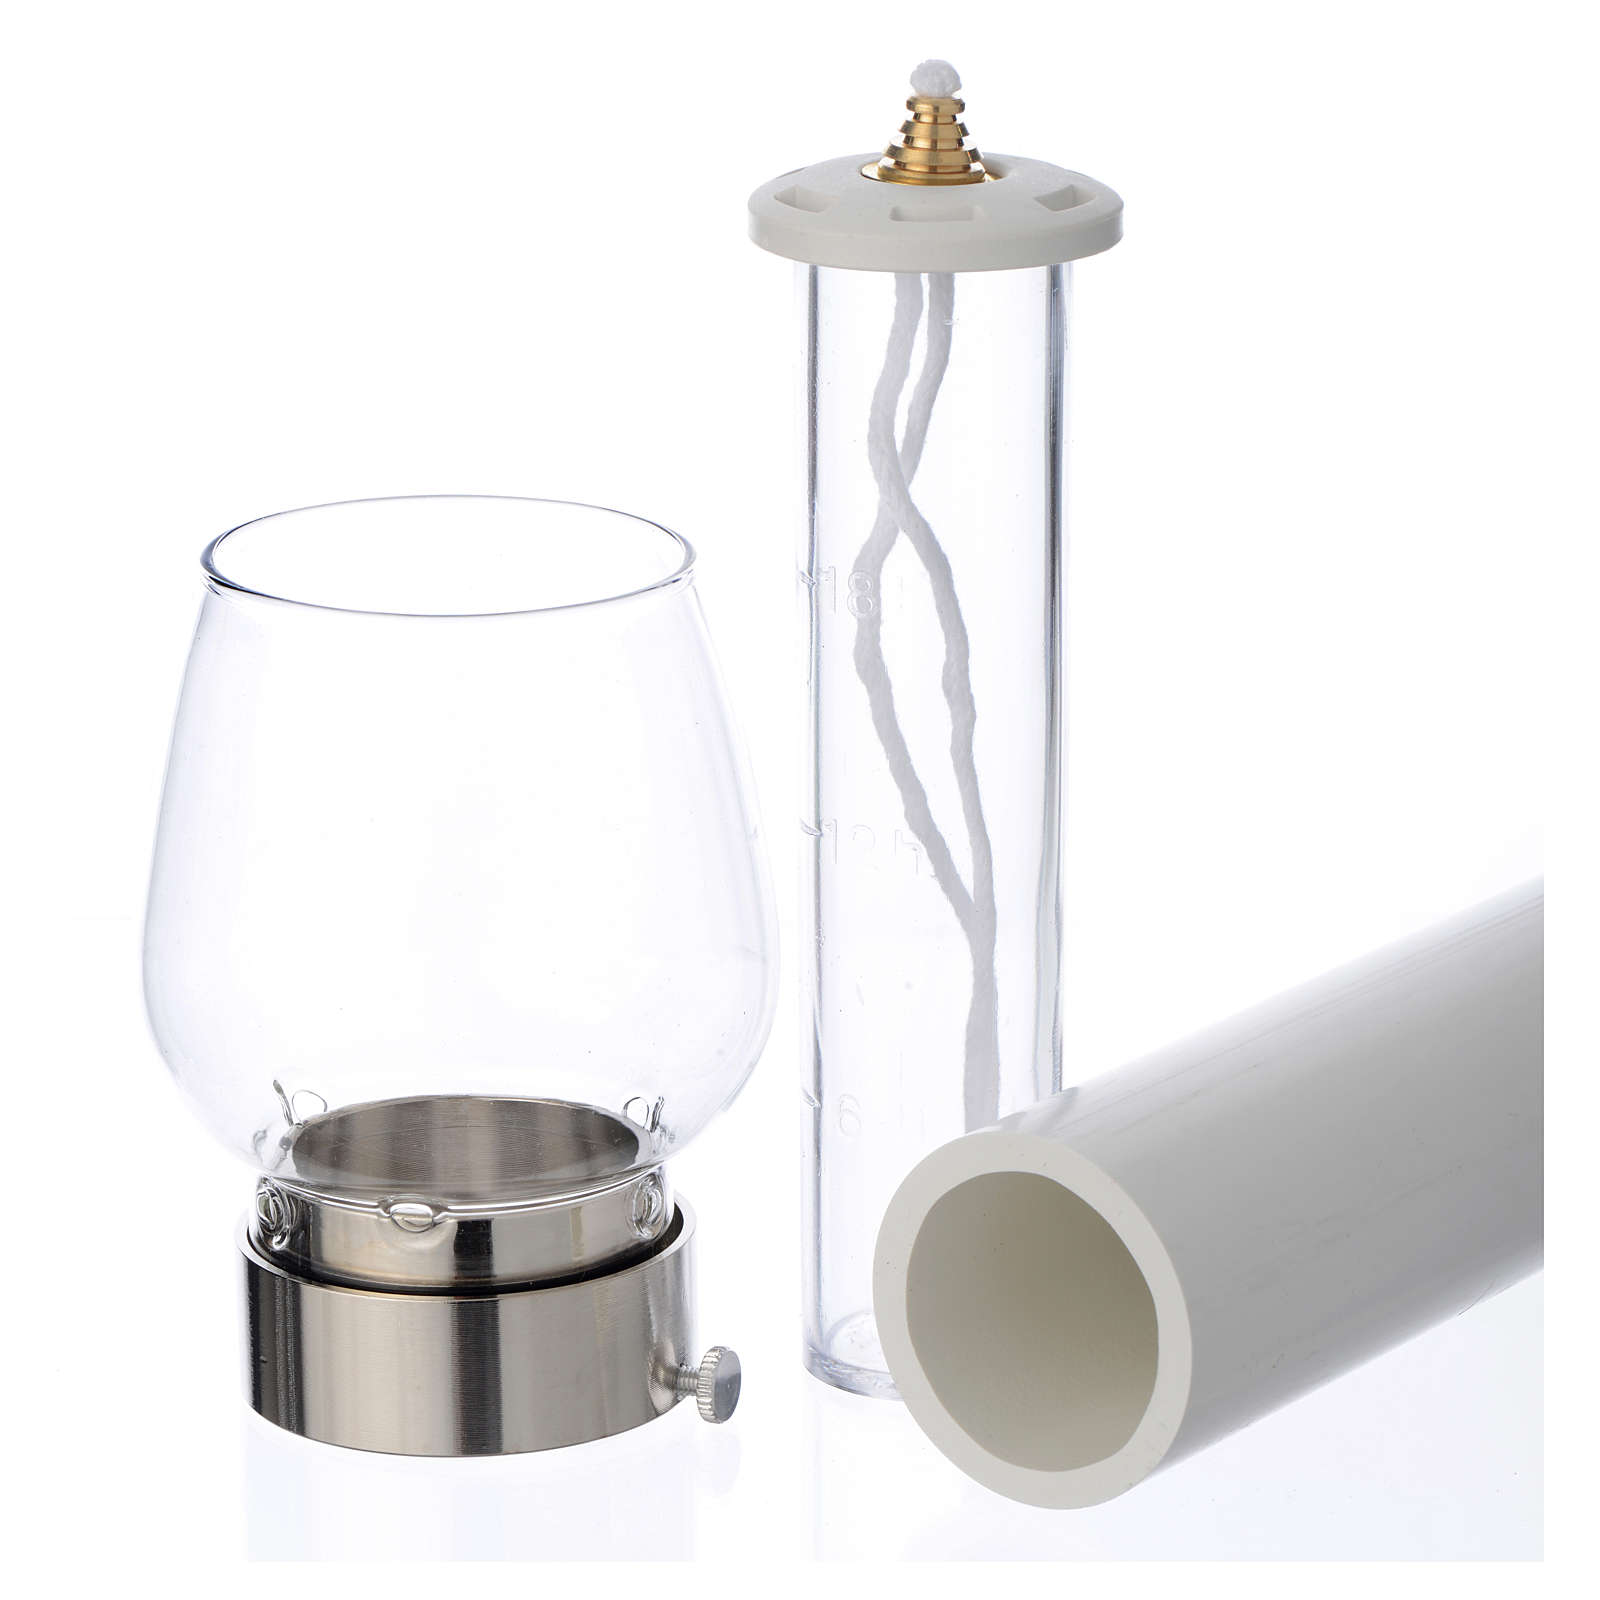 Wind-proof lamp, 30cm tall with silver base, 5cm diameter 3